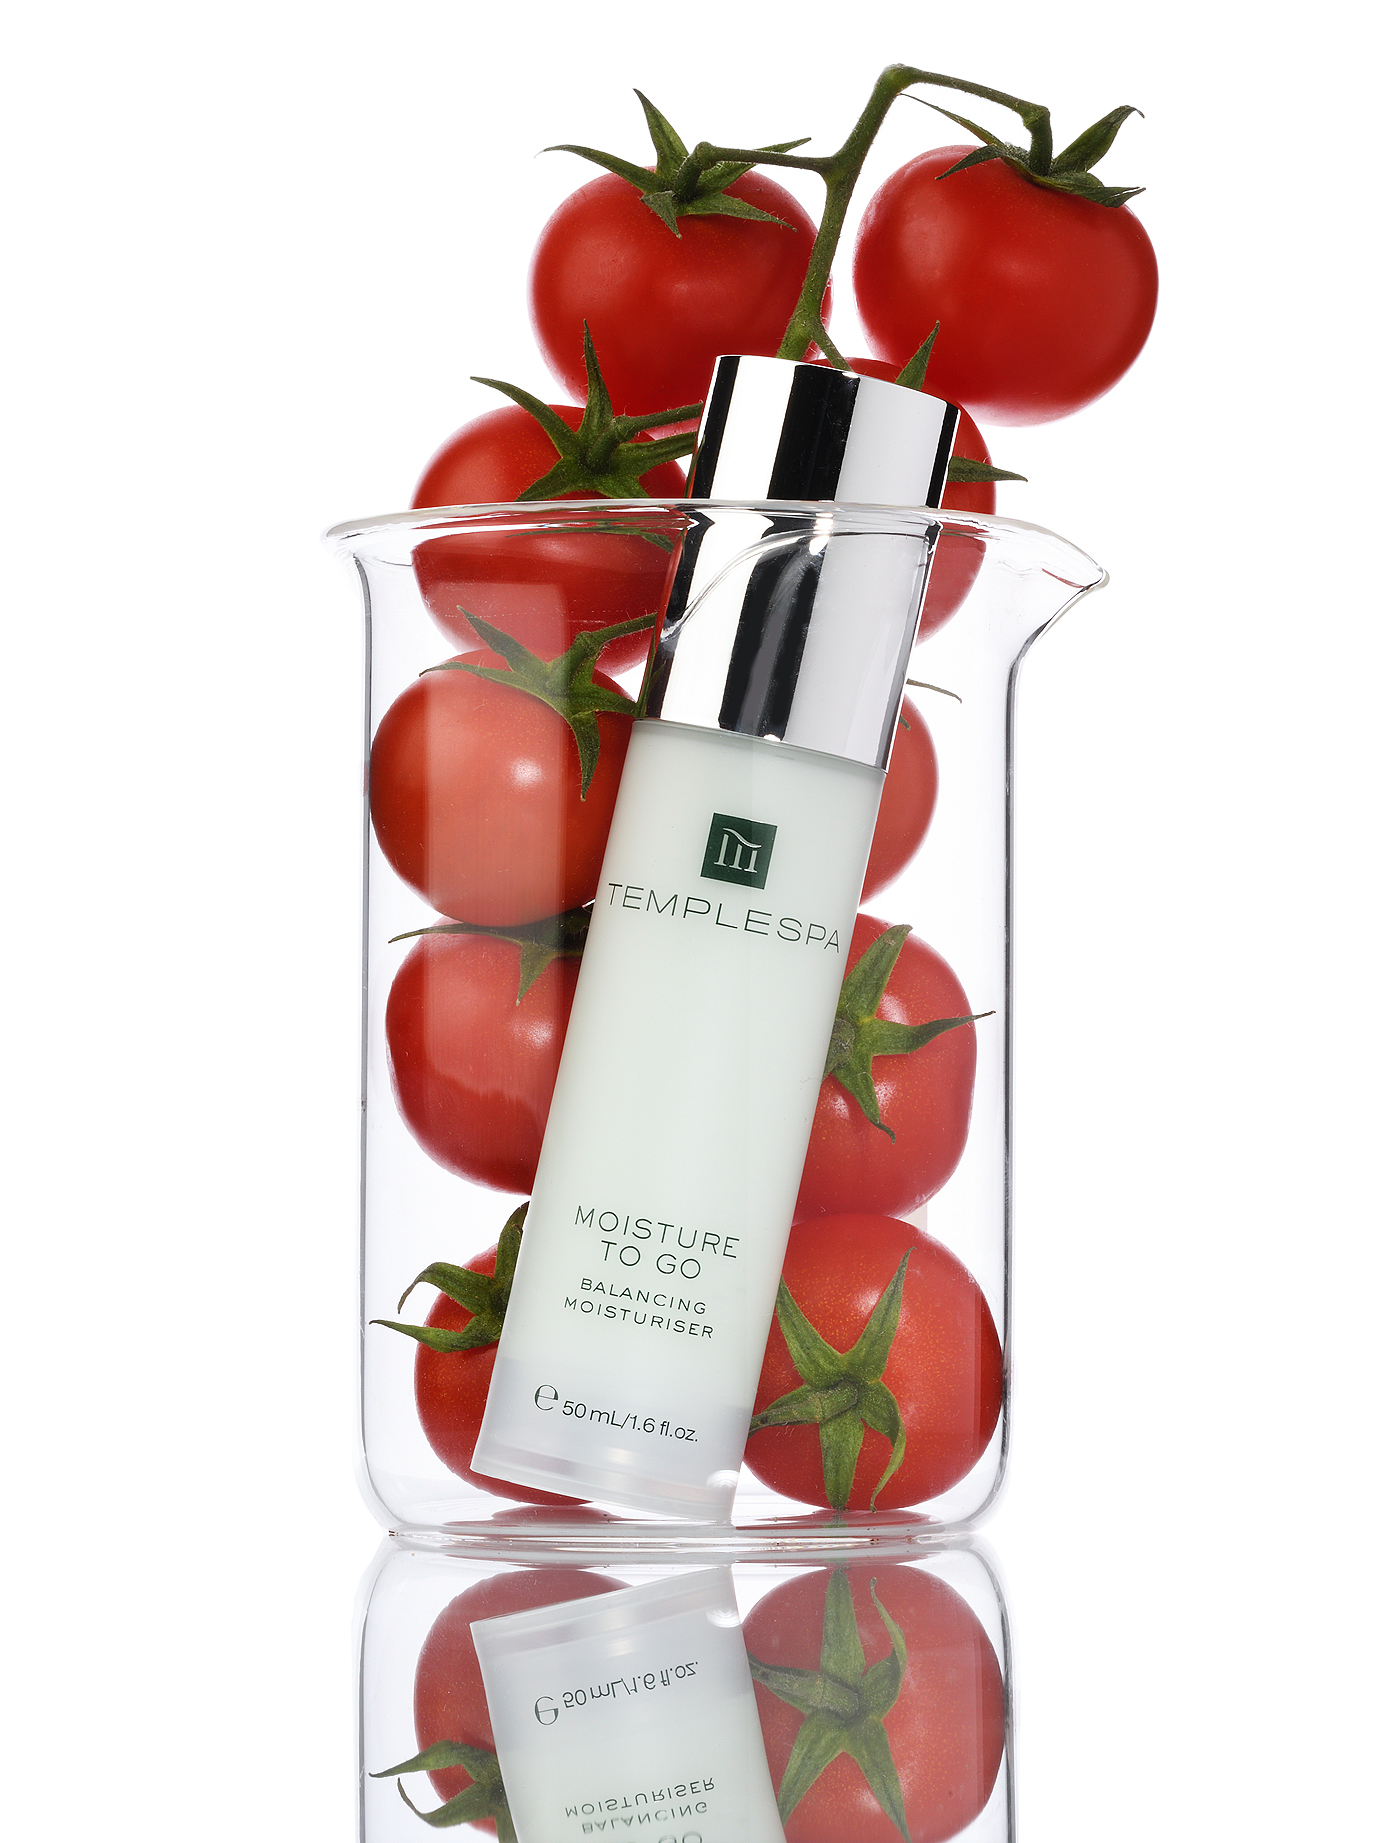 Tomatoes in a beaker with white background